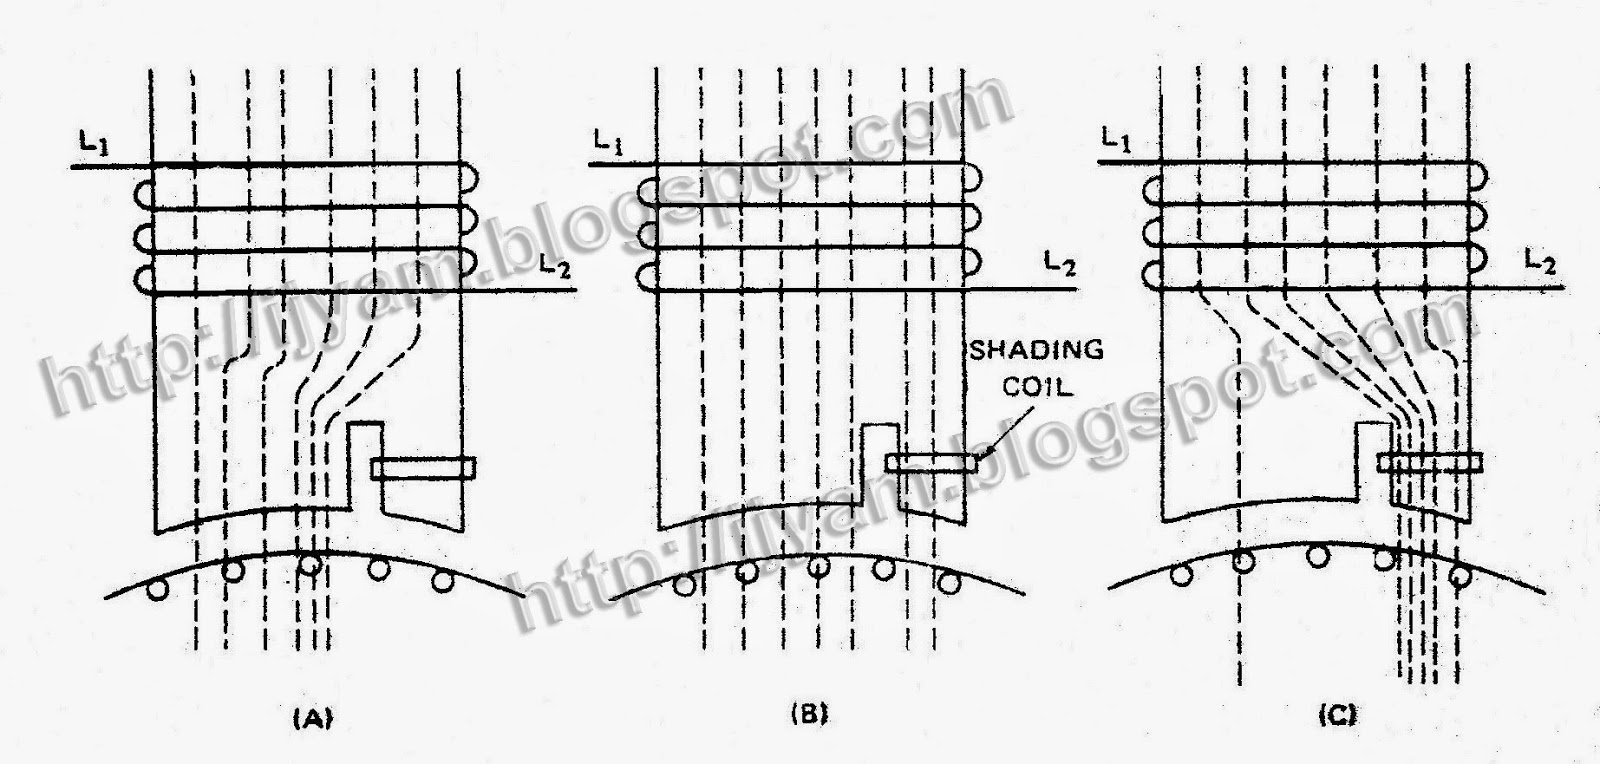 Motor Wiring Diagram Also Instant Reverse Motor Single Phase Wiring